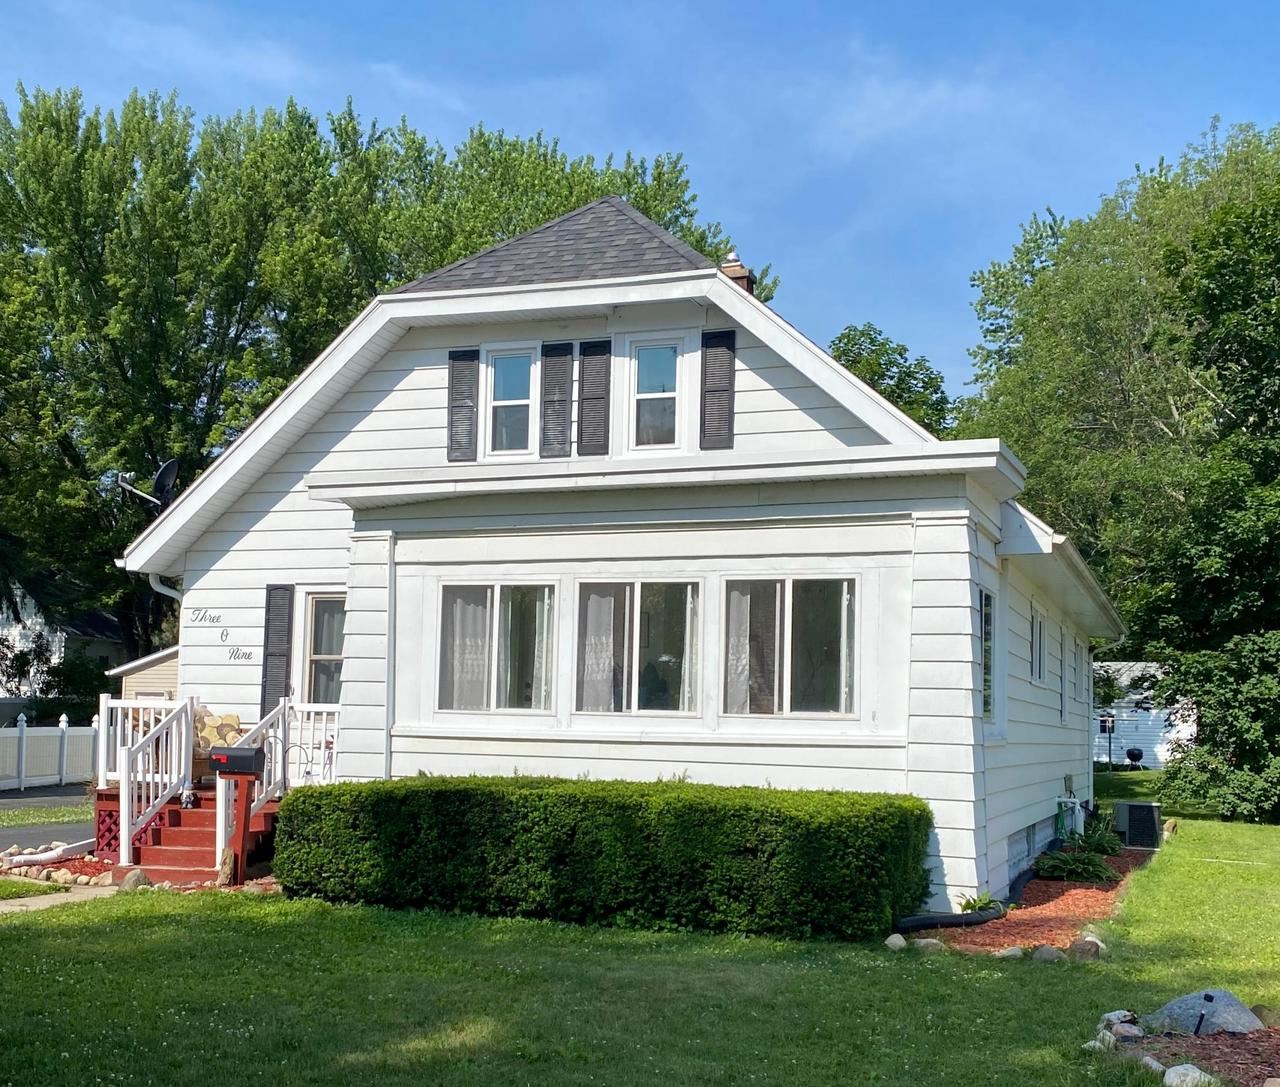 309 Shirley St, Fort Atkinson, WI 53538 - #: 369584